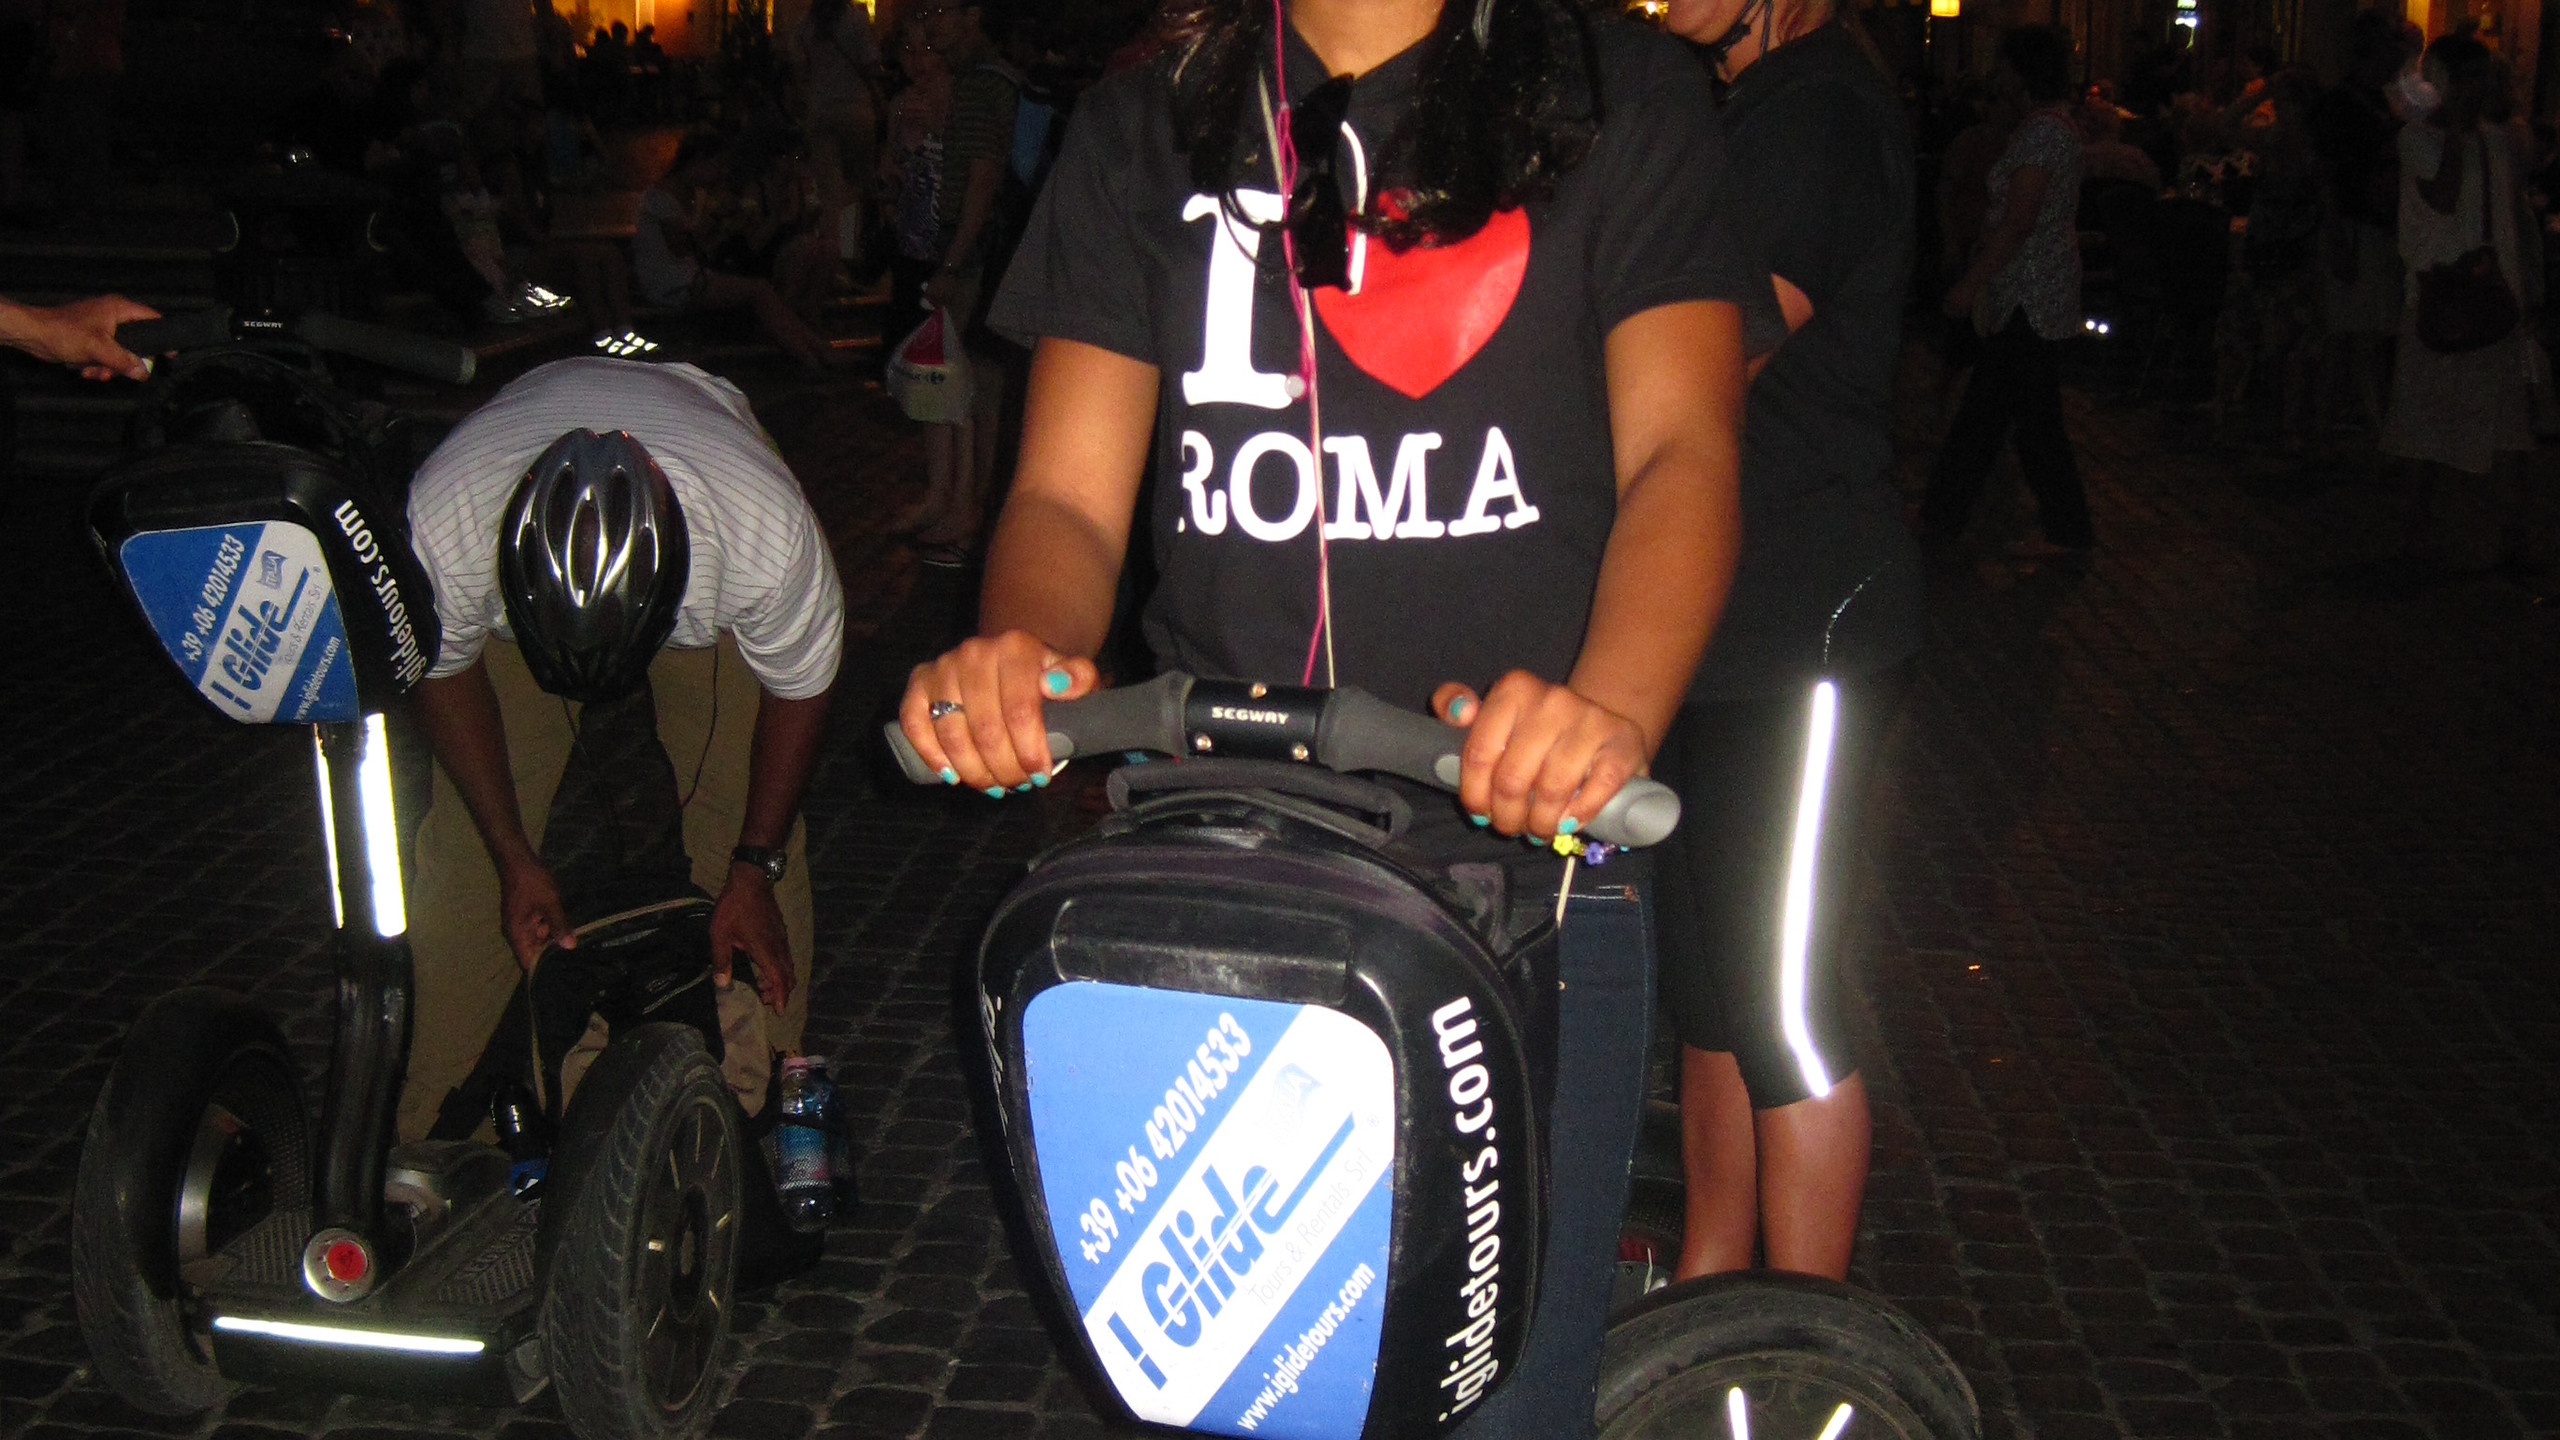 Segway tour around Fountain of Four Rivers in Rome and surrounding area